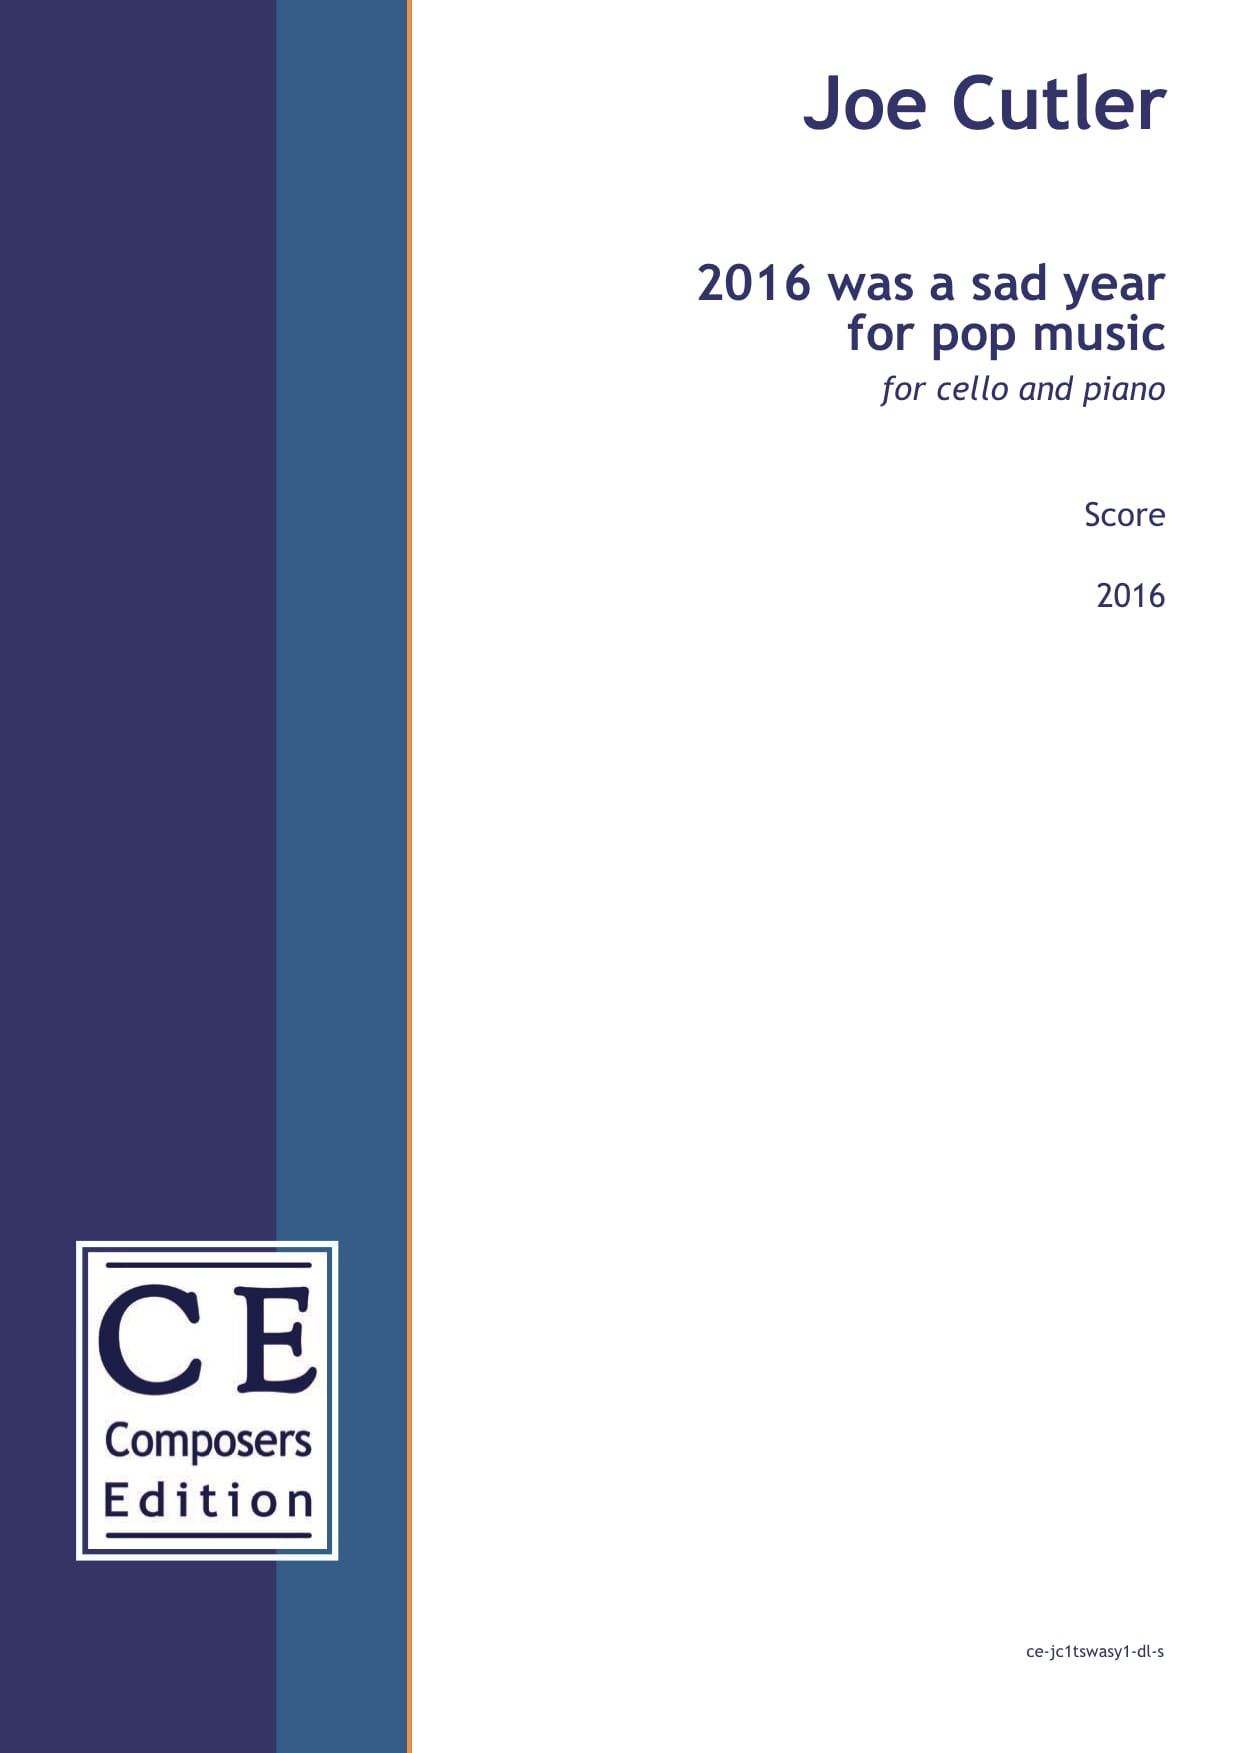 Joe Cutler: 2016 was a sad year for pop music for cello and piano